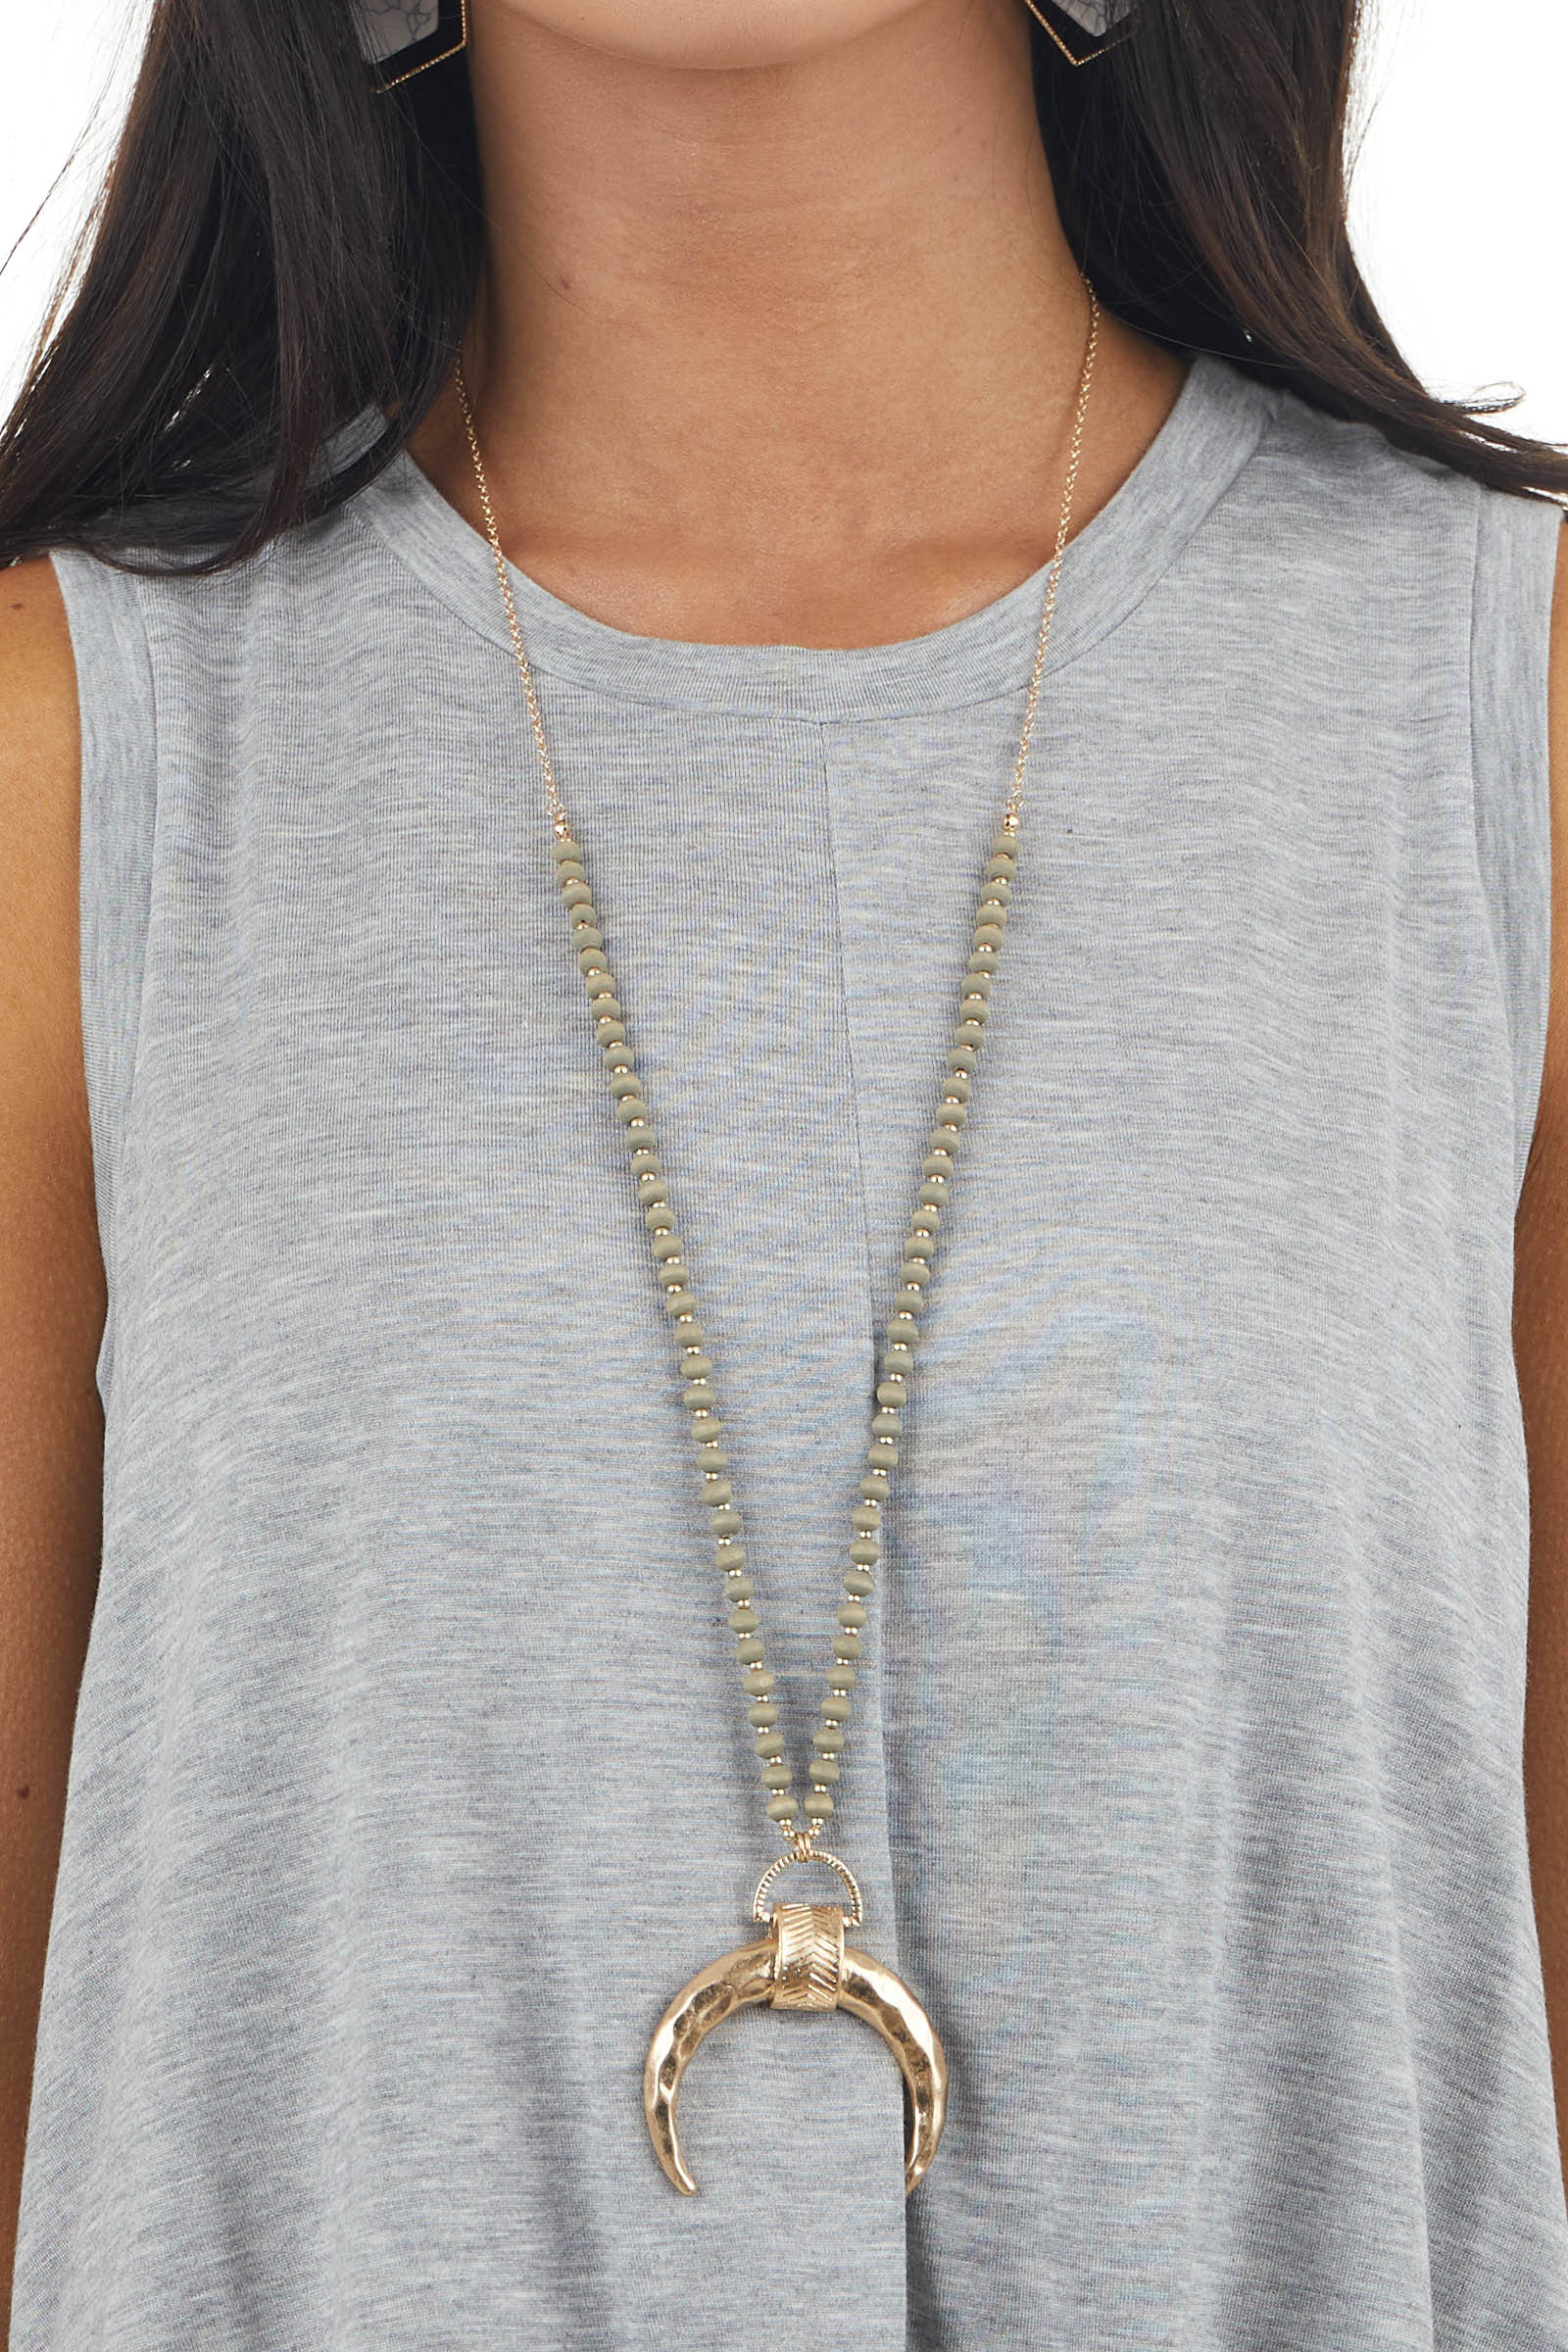 Ash Grey Beaded Long Necklace with Hammered Gold Crescent